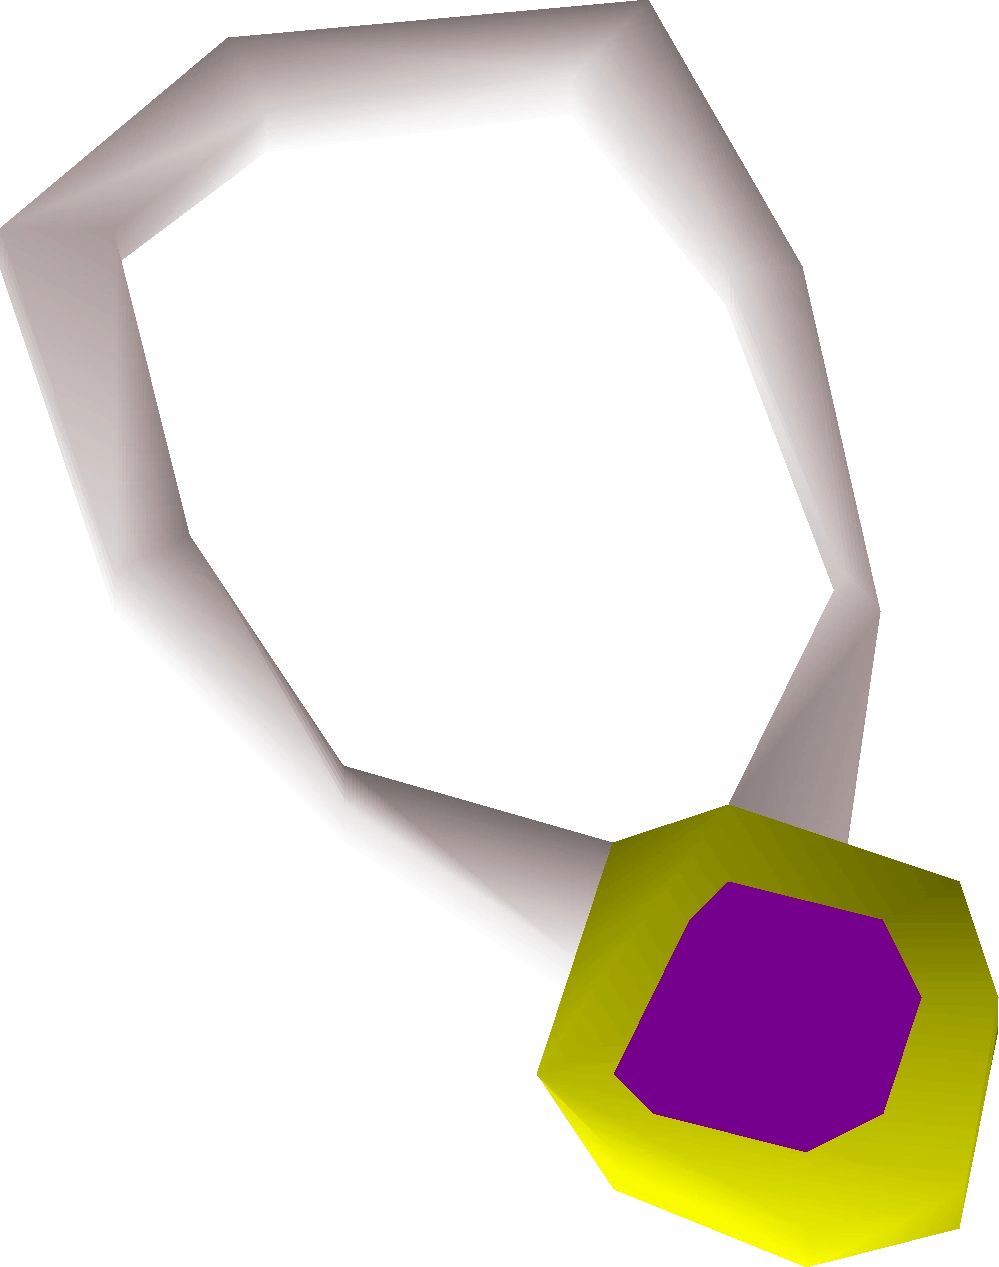 Charge Dragonstone Jewelry Scroll Osrs : charge, dragonstone, jewelry, scroll, Dragonstone, Amulet, School, RuneScape, Fandom